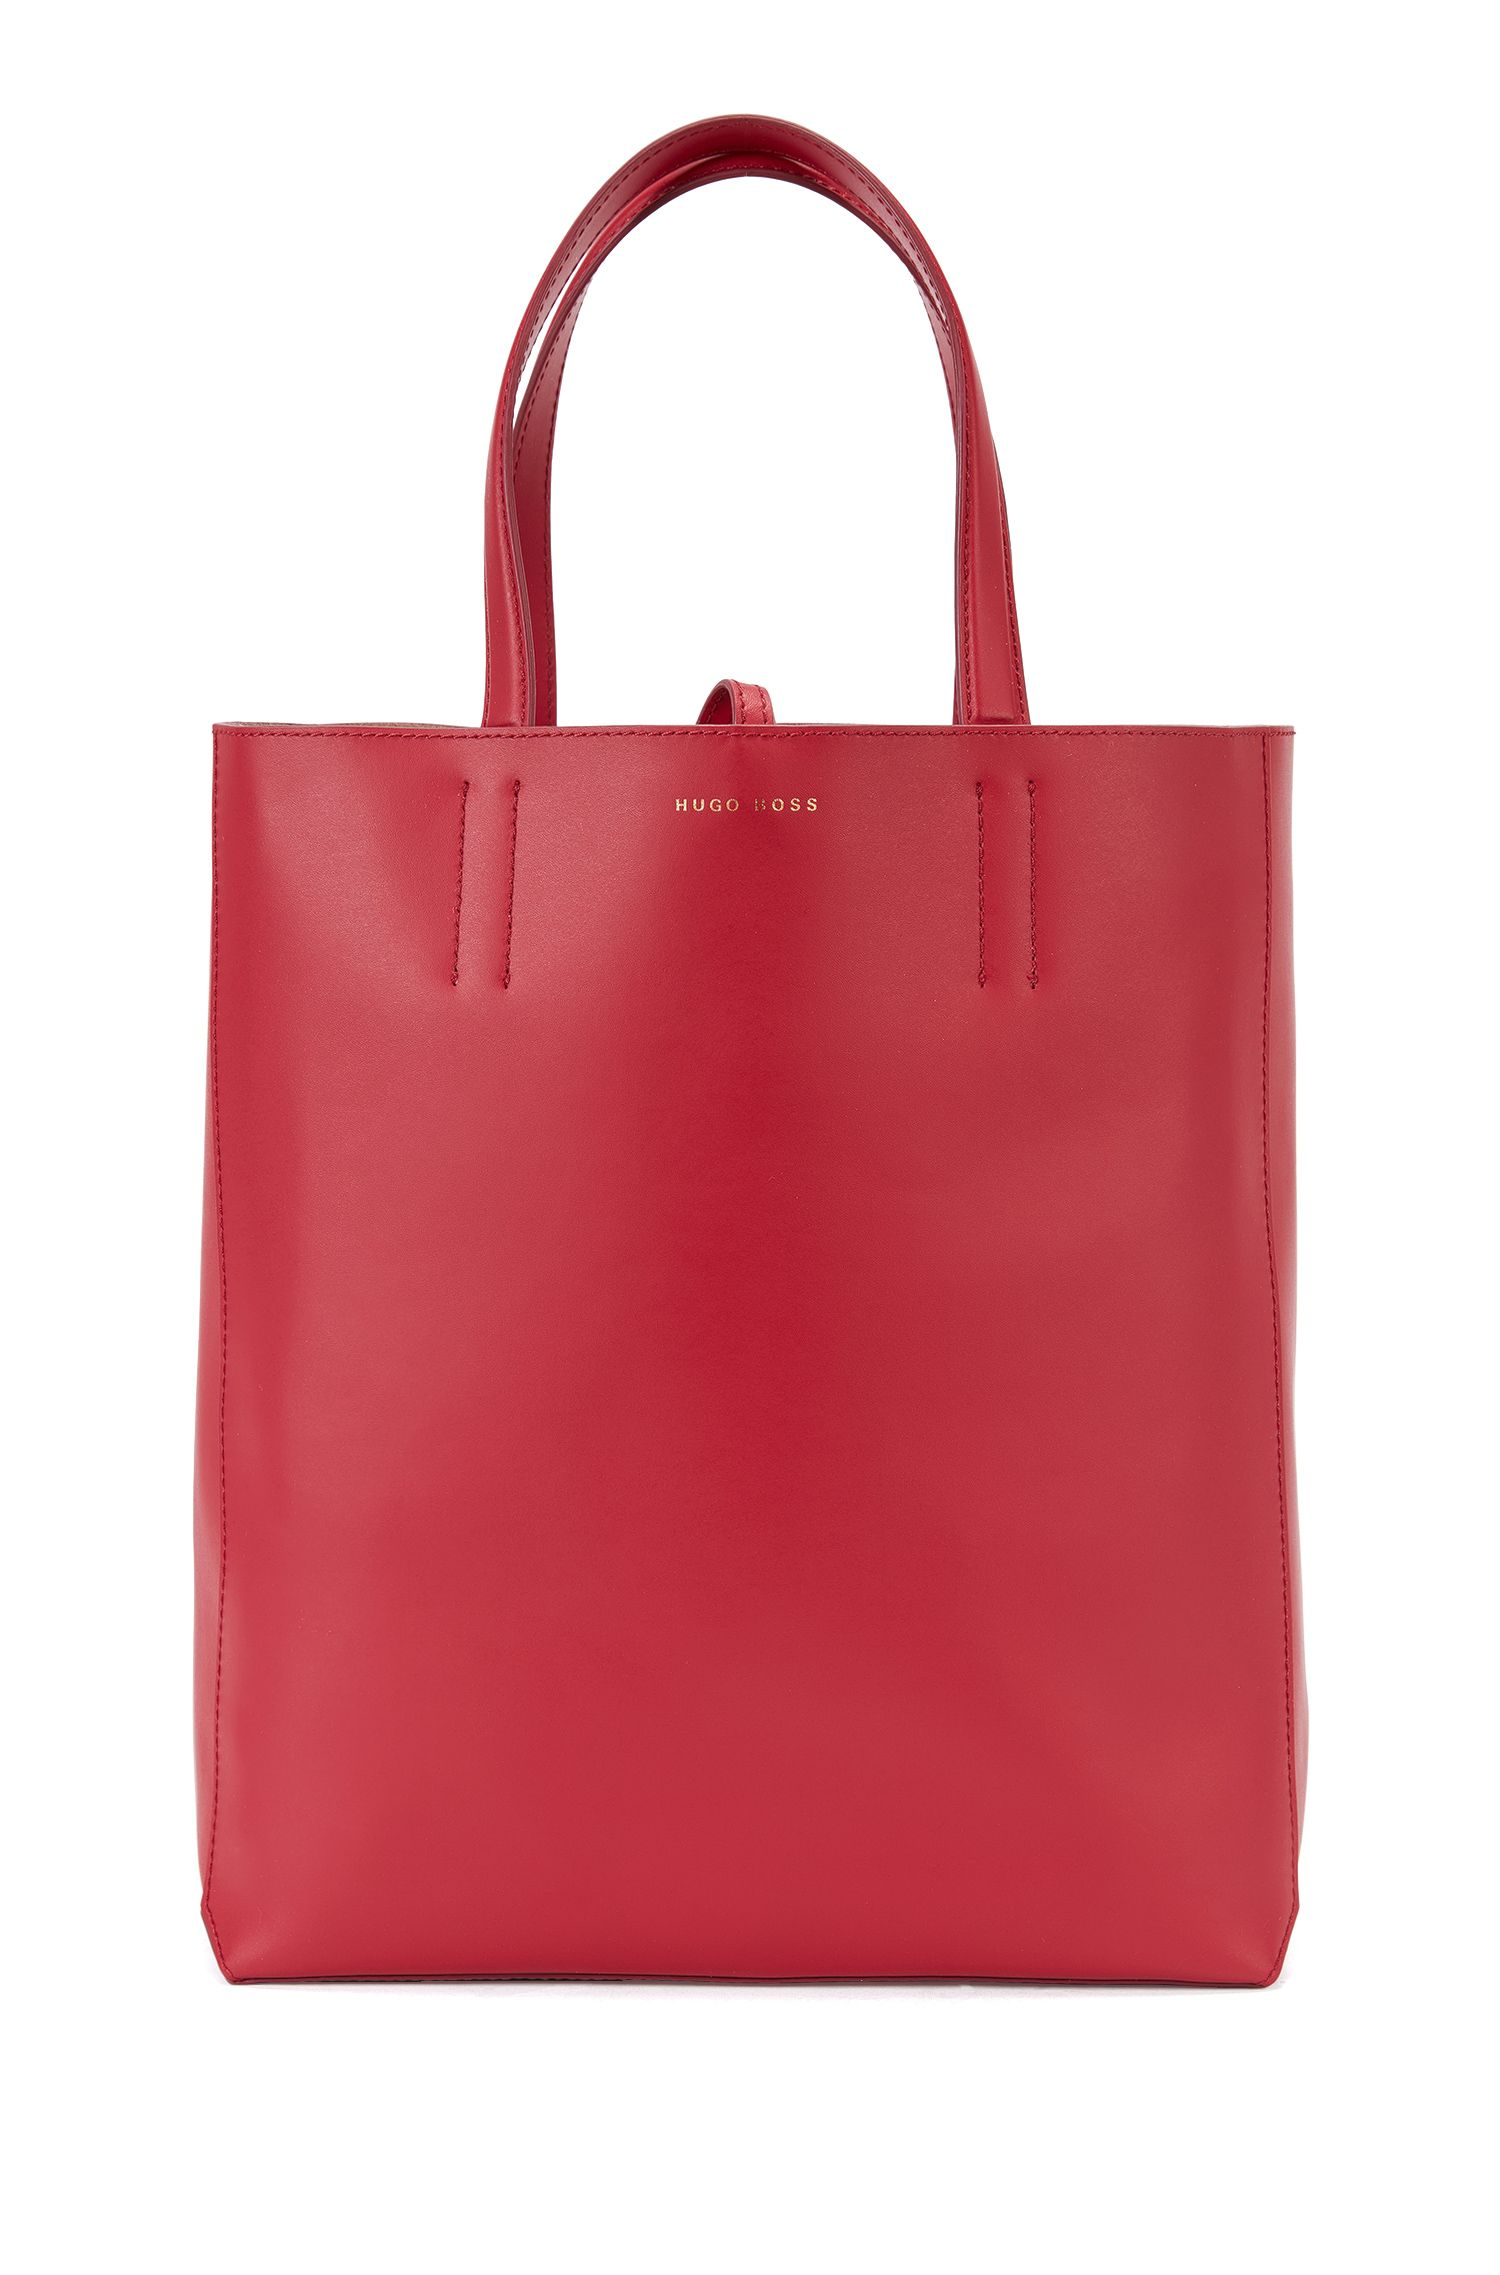 Spacious tote bag in smooth Italian leather